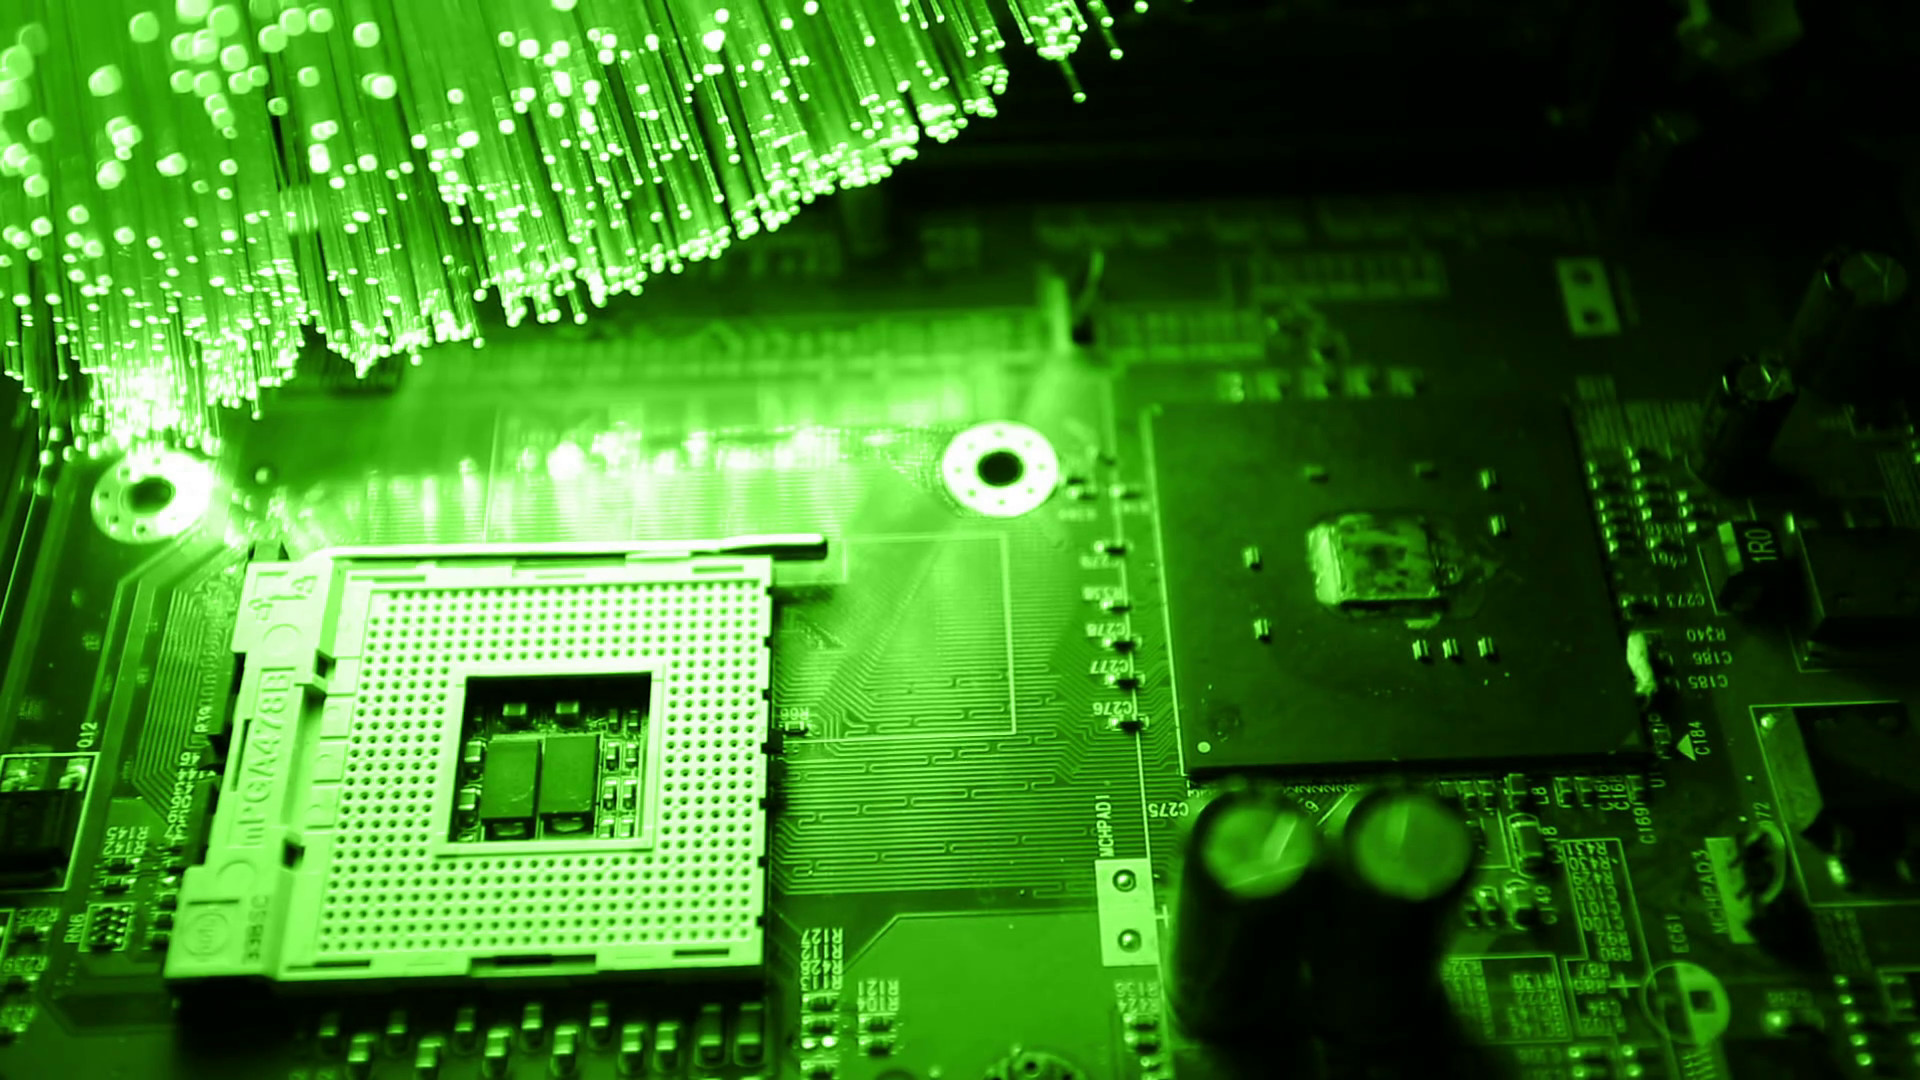 Res: 1920x1080, cpu and motherboard with Fiber optics background, shot in HD Stock Video  Footage - Videoblocks